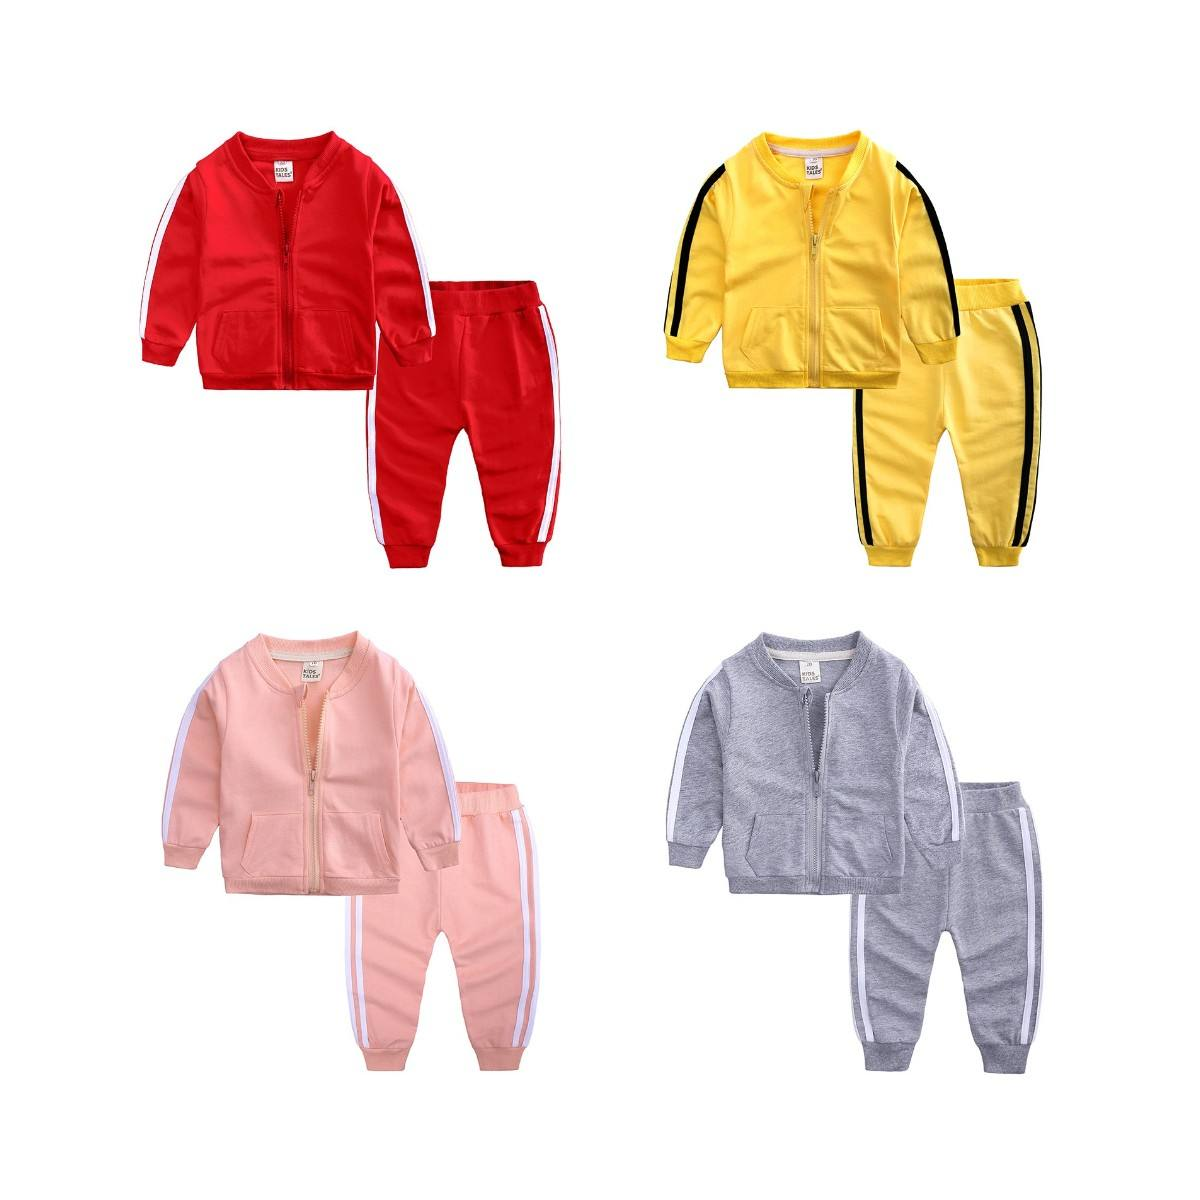 Fashion long sleeve baby tracksuit set toddler baby boys clothing set